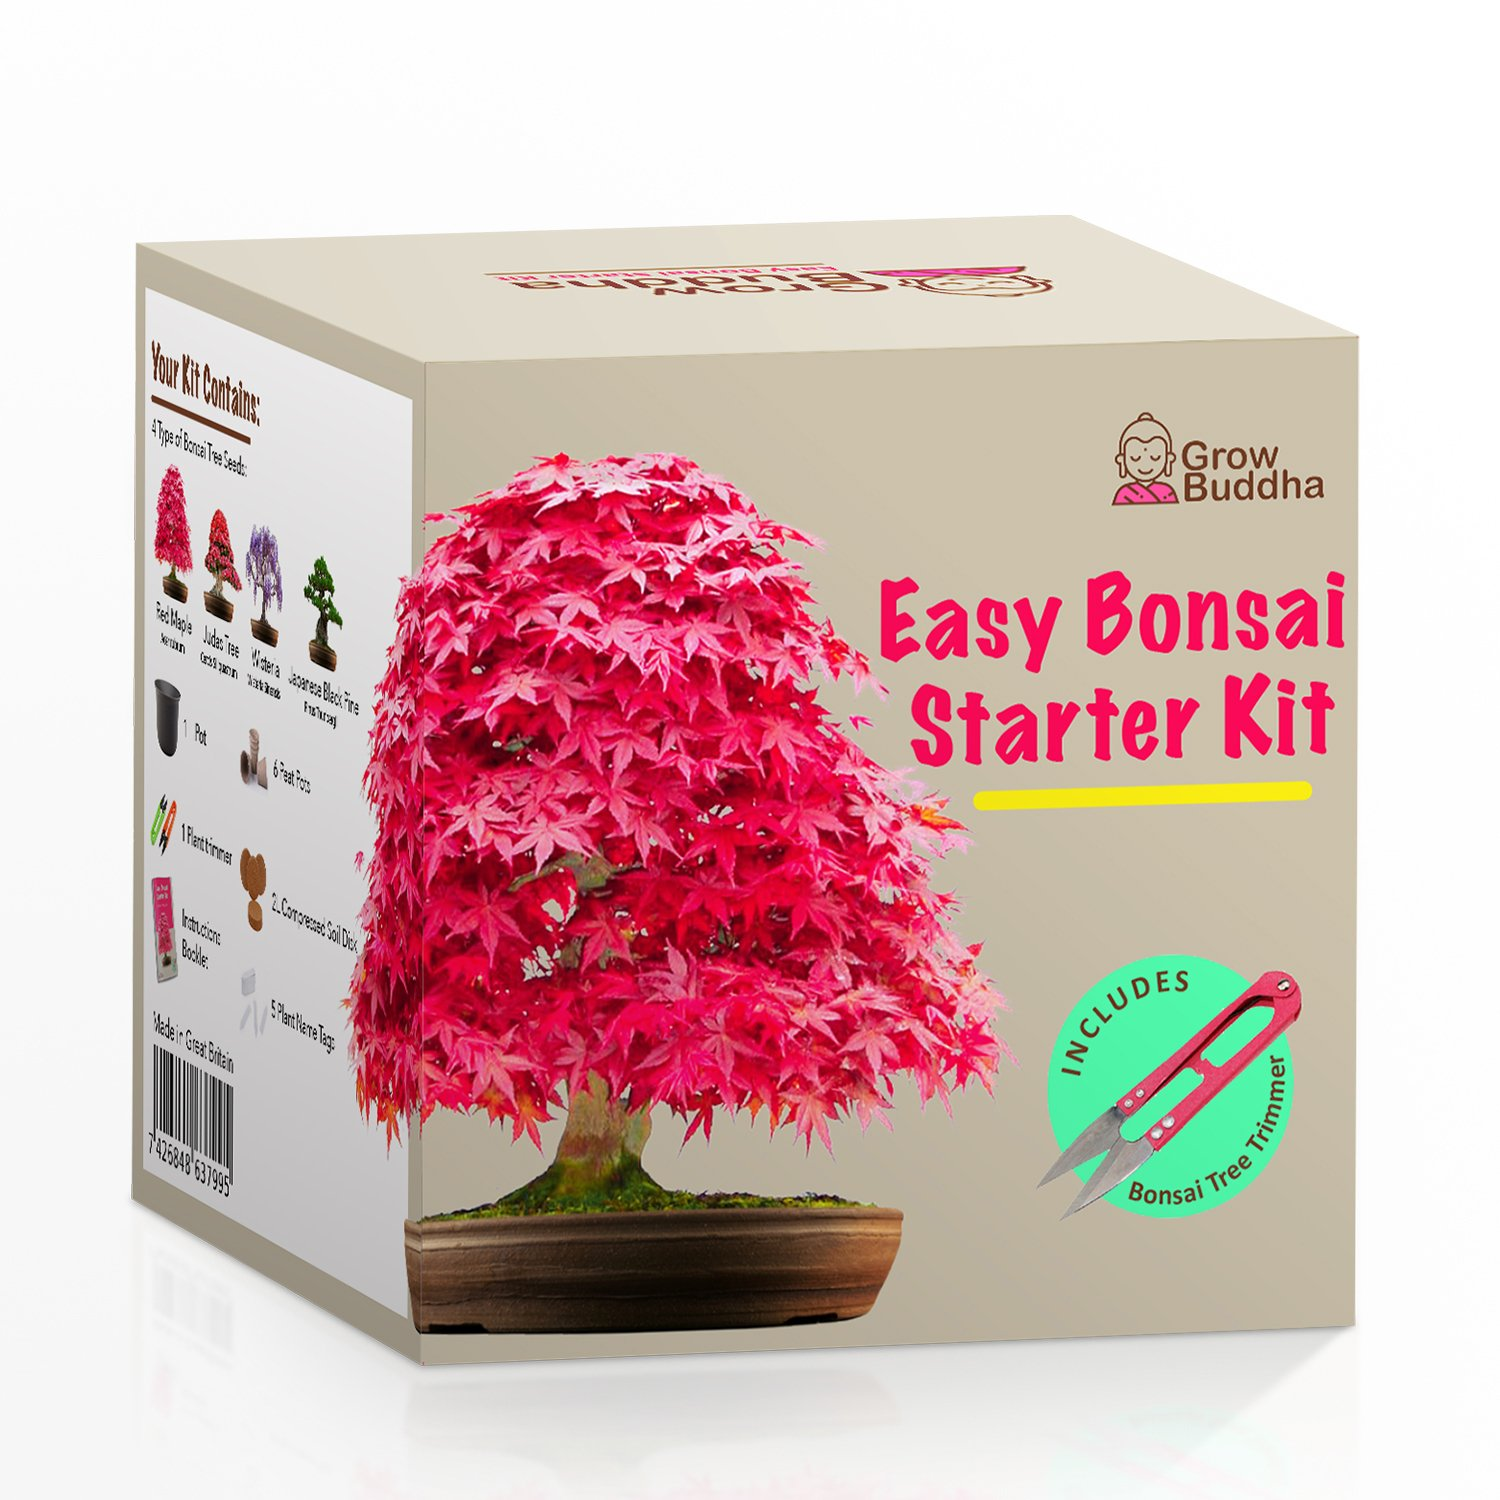 Grow Your own Bonsai kit – Easily Grow 4 Types of Bonsai Trees with Our Complete Beginner Friendly Bonsai Seeds Starter kit – Unique Seed kit Gift idea Grow Buddha